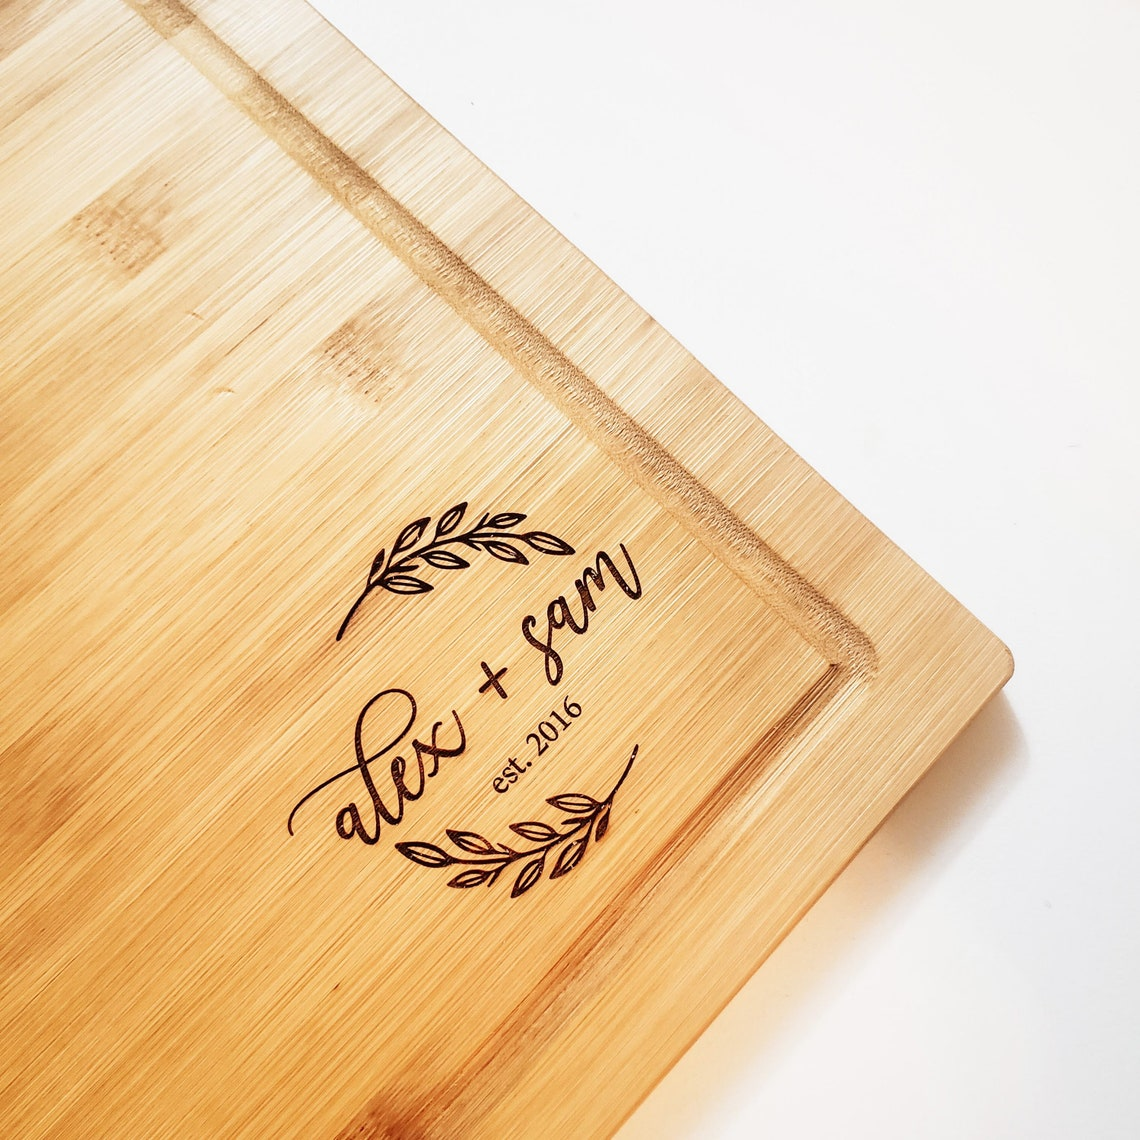 Personalized Engraved Cutting Board Laser Engraved Bamboo. Wreath Couple Name